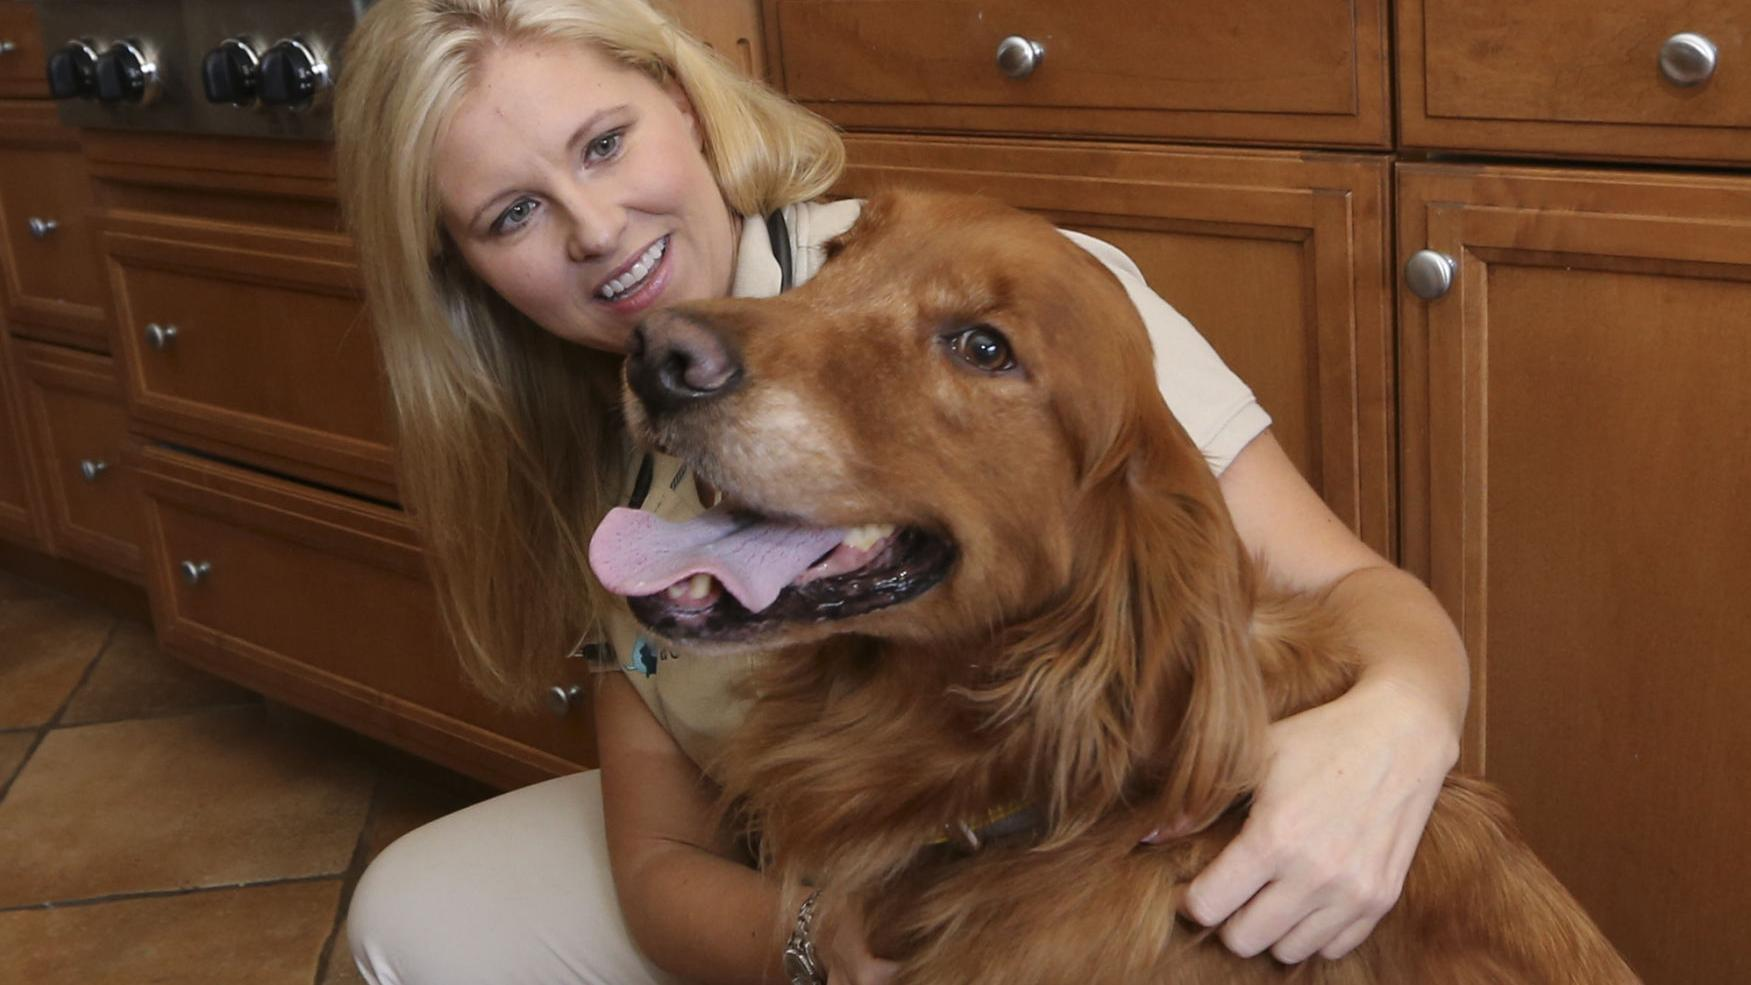 Pets pick up on cues to comfort the dying, grieving | Entertainment |  siouxcityjournal.com